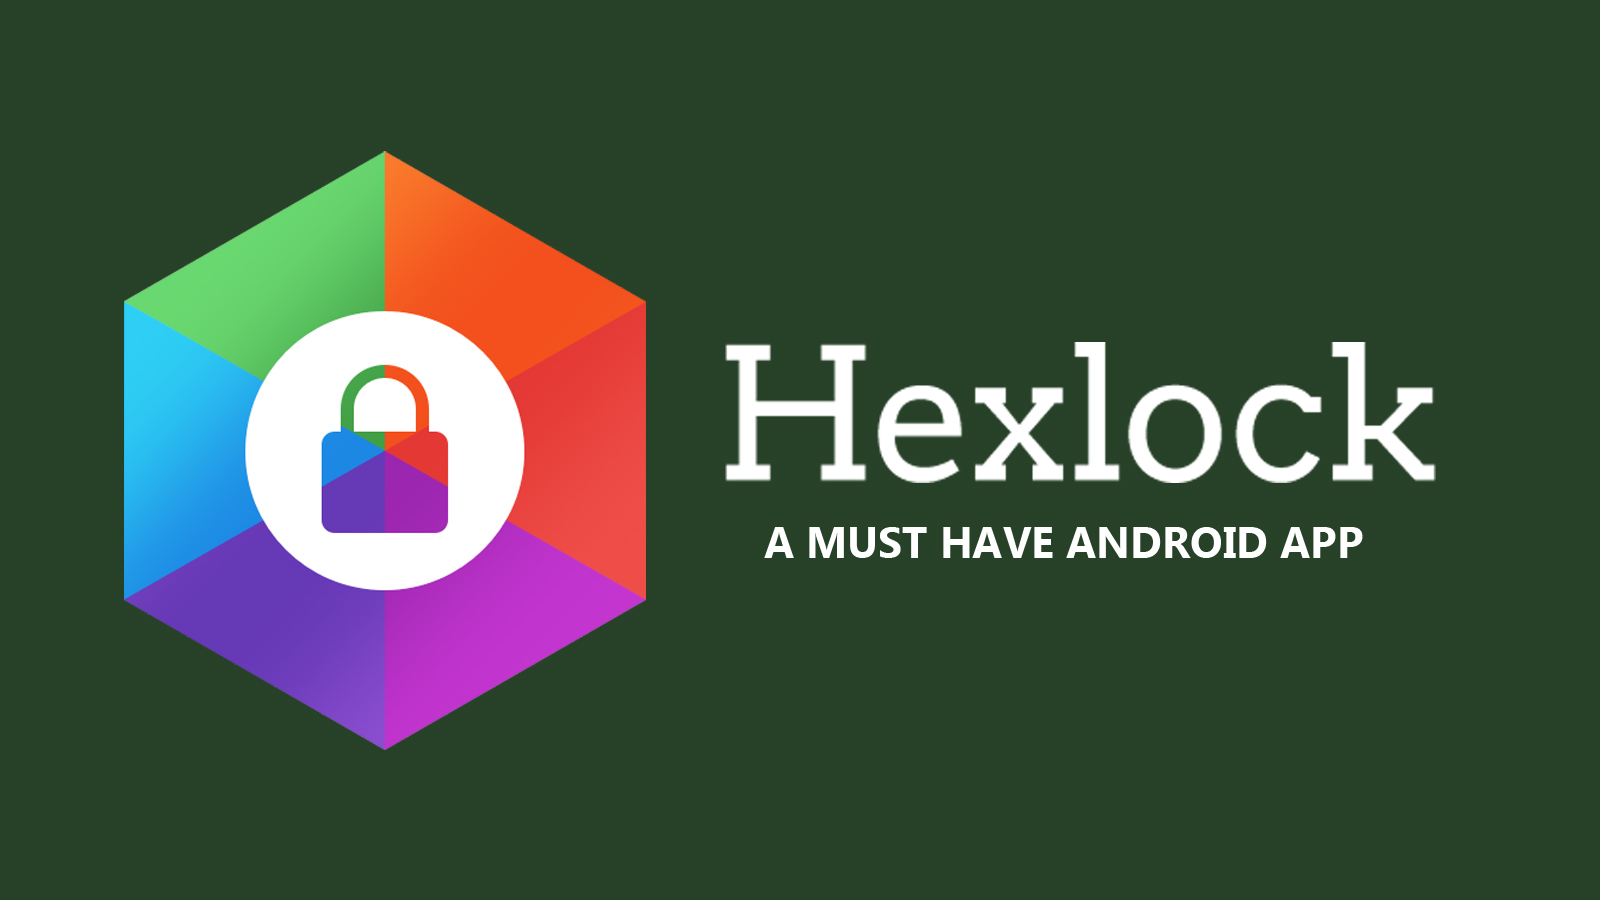 Hexlock - A Must Have Android App